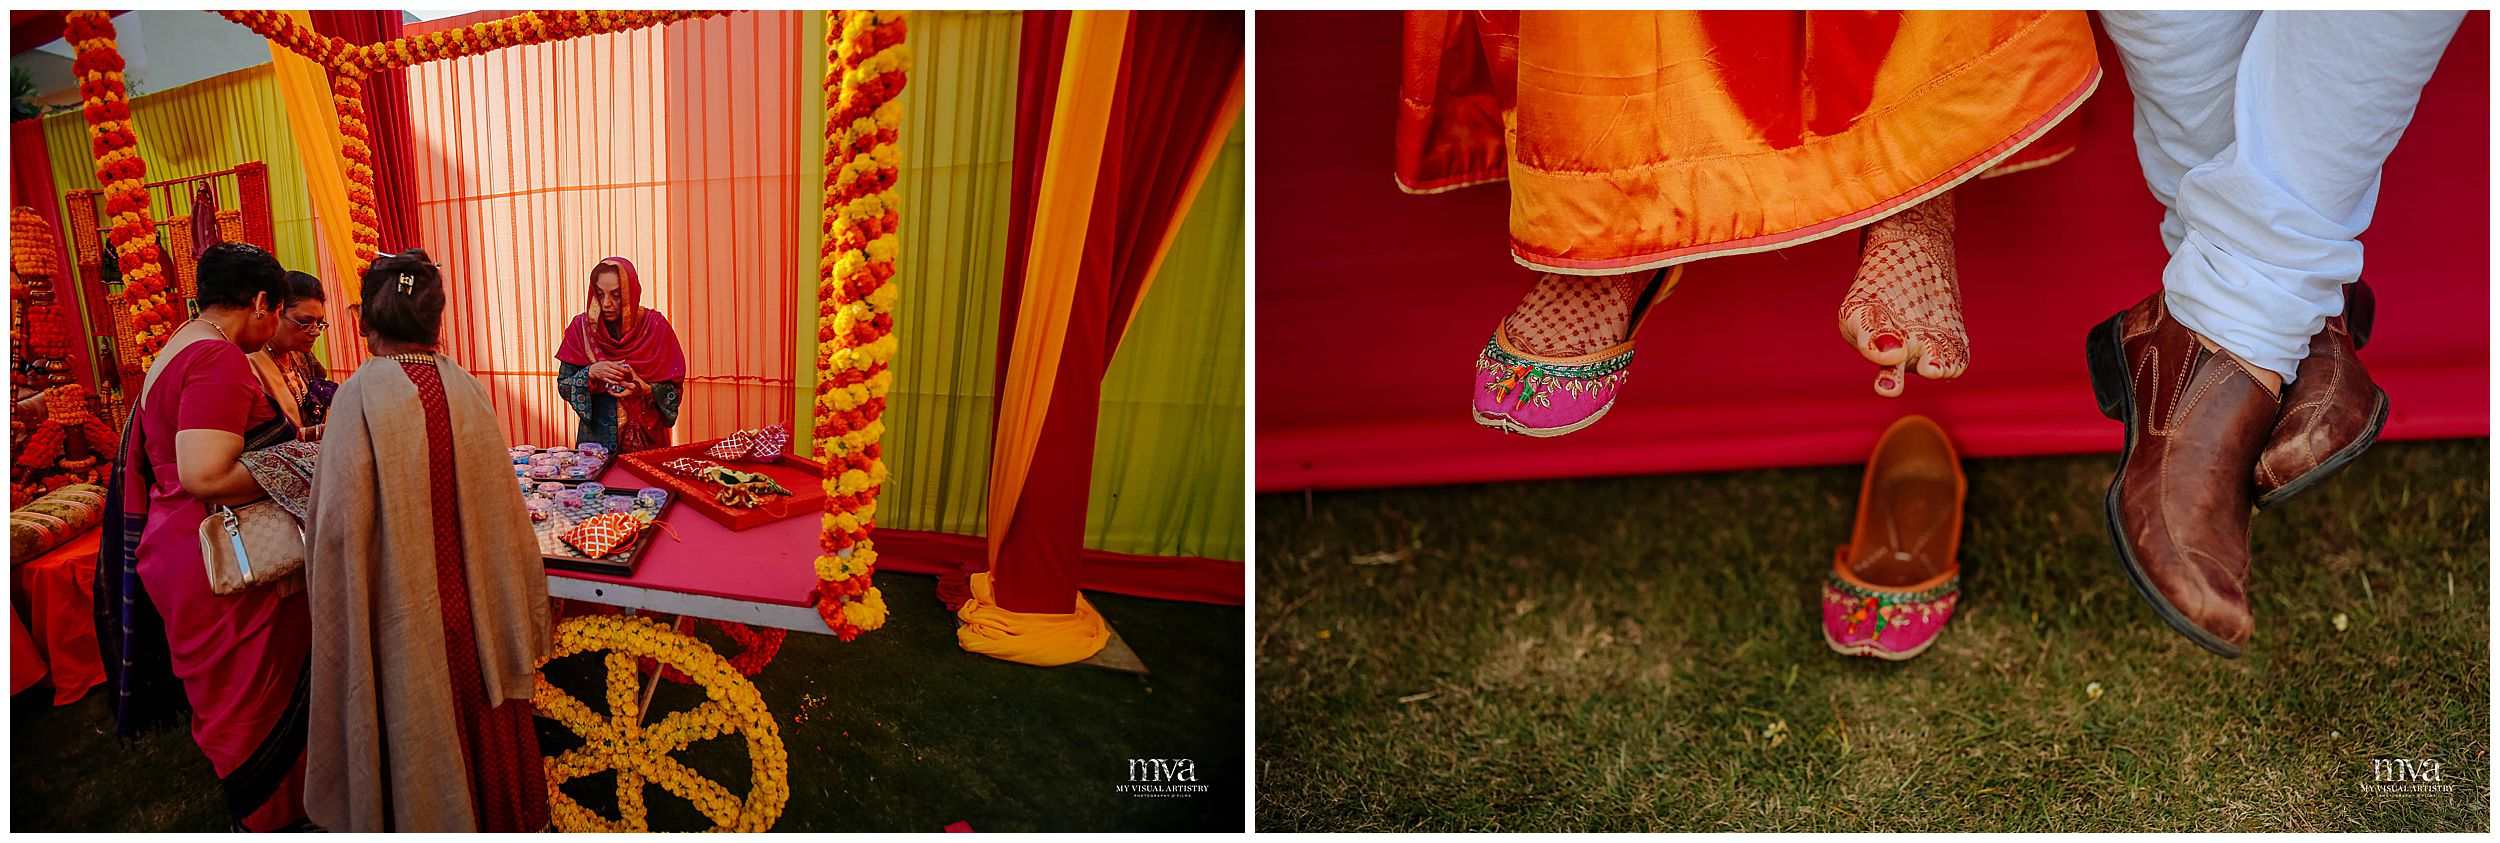 SAHIBA_KARTHIK_MYVISUALARTISTRY_WEDDING_PHOTOGRAPHY_MVA_KERALA_GURGAON_0027.jpg